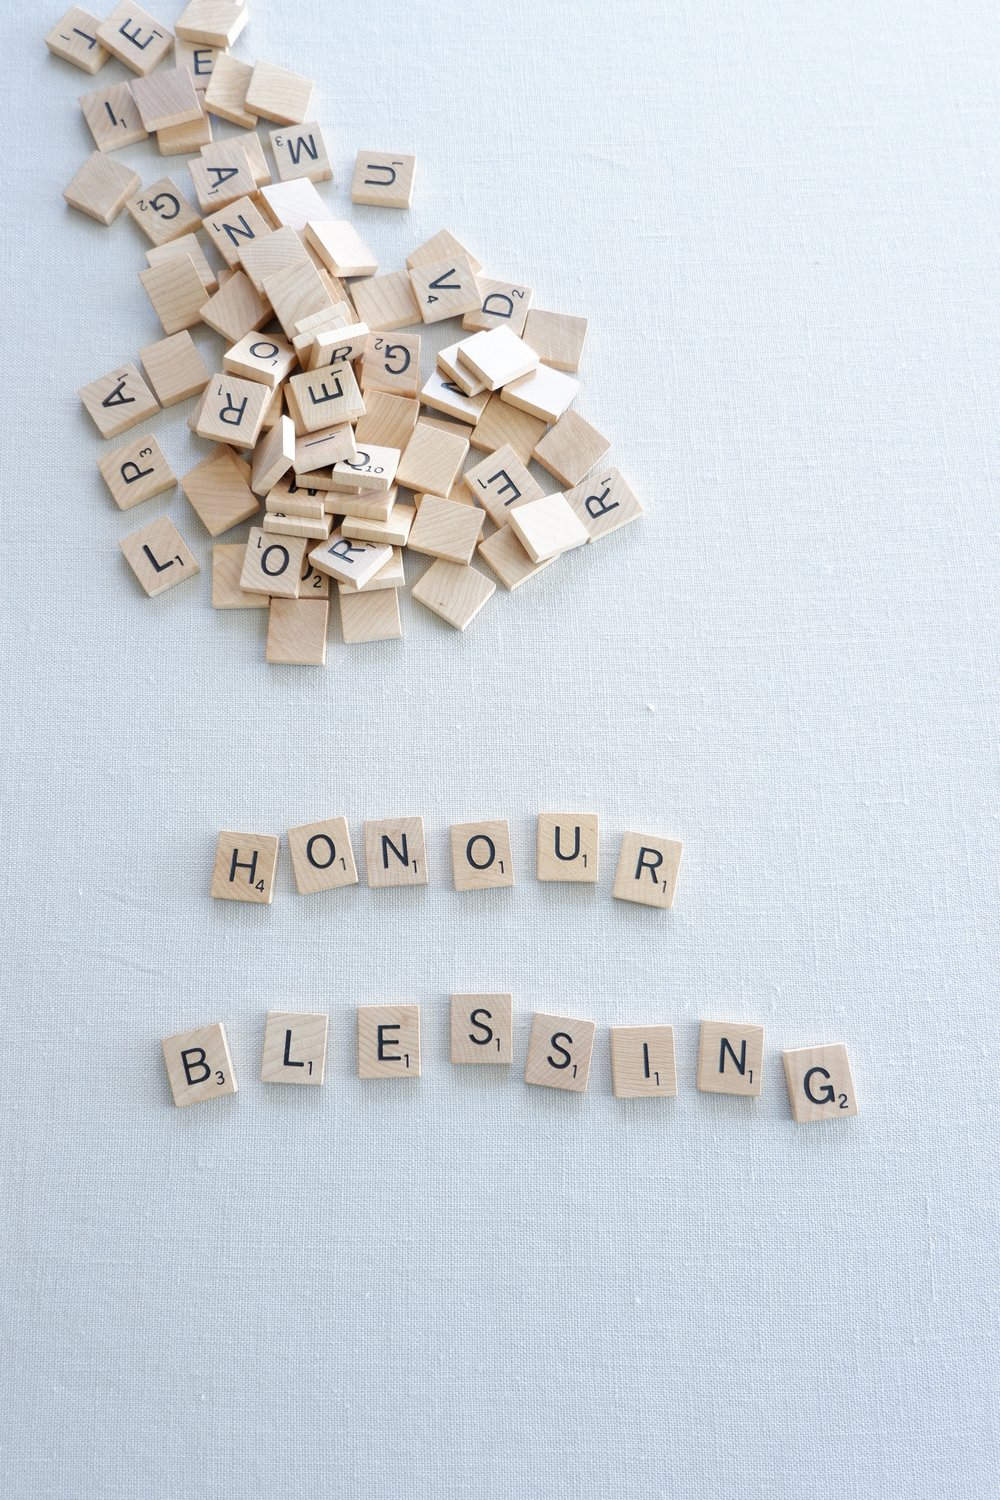 Spelling-out-honour-and-blessing-with-scrabble-tiles